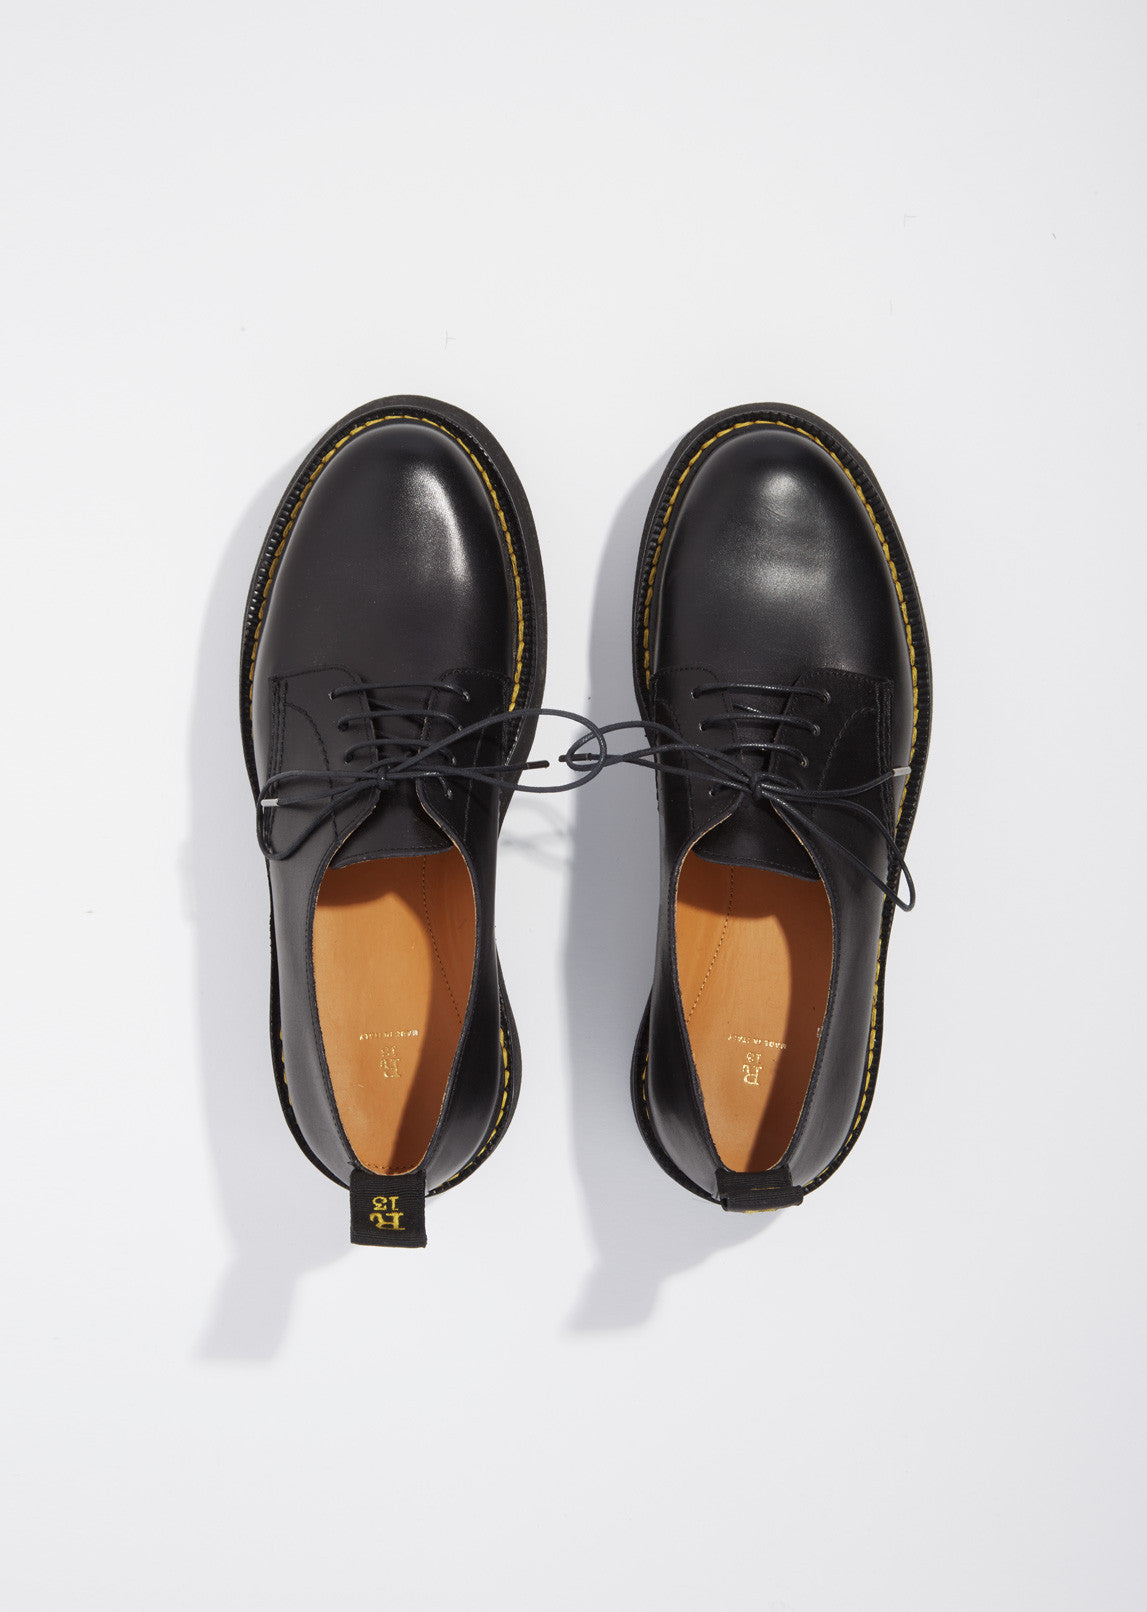 $297 ROBERT WAYNE Mens BROWN LEATHER OXFORD CASUAL LACE UP DRESS SHOES SIZE 10